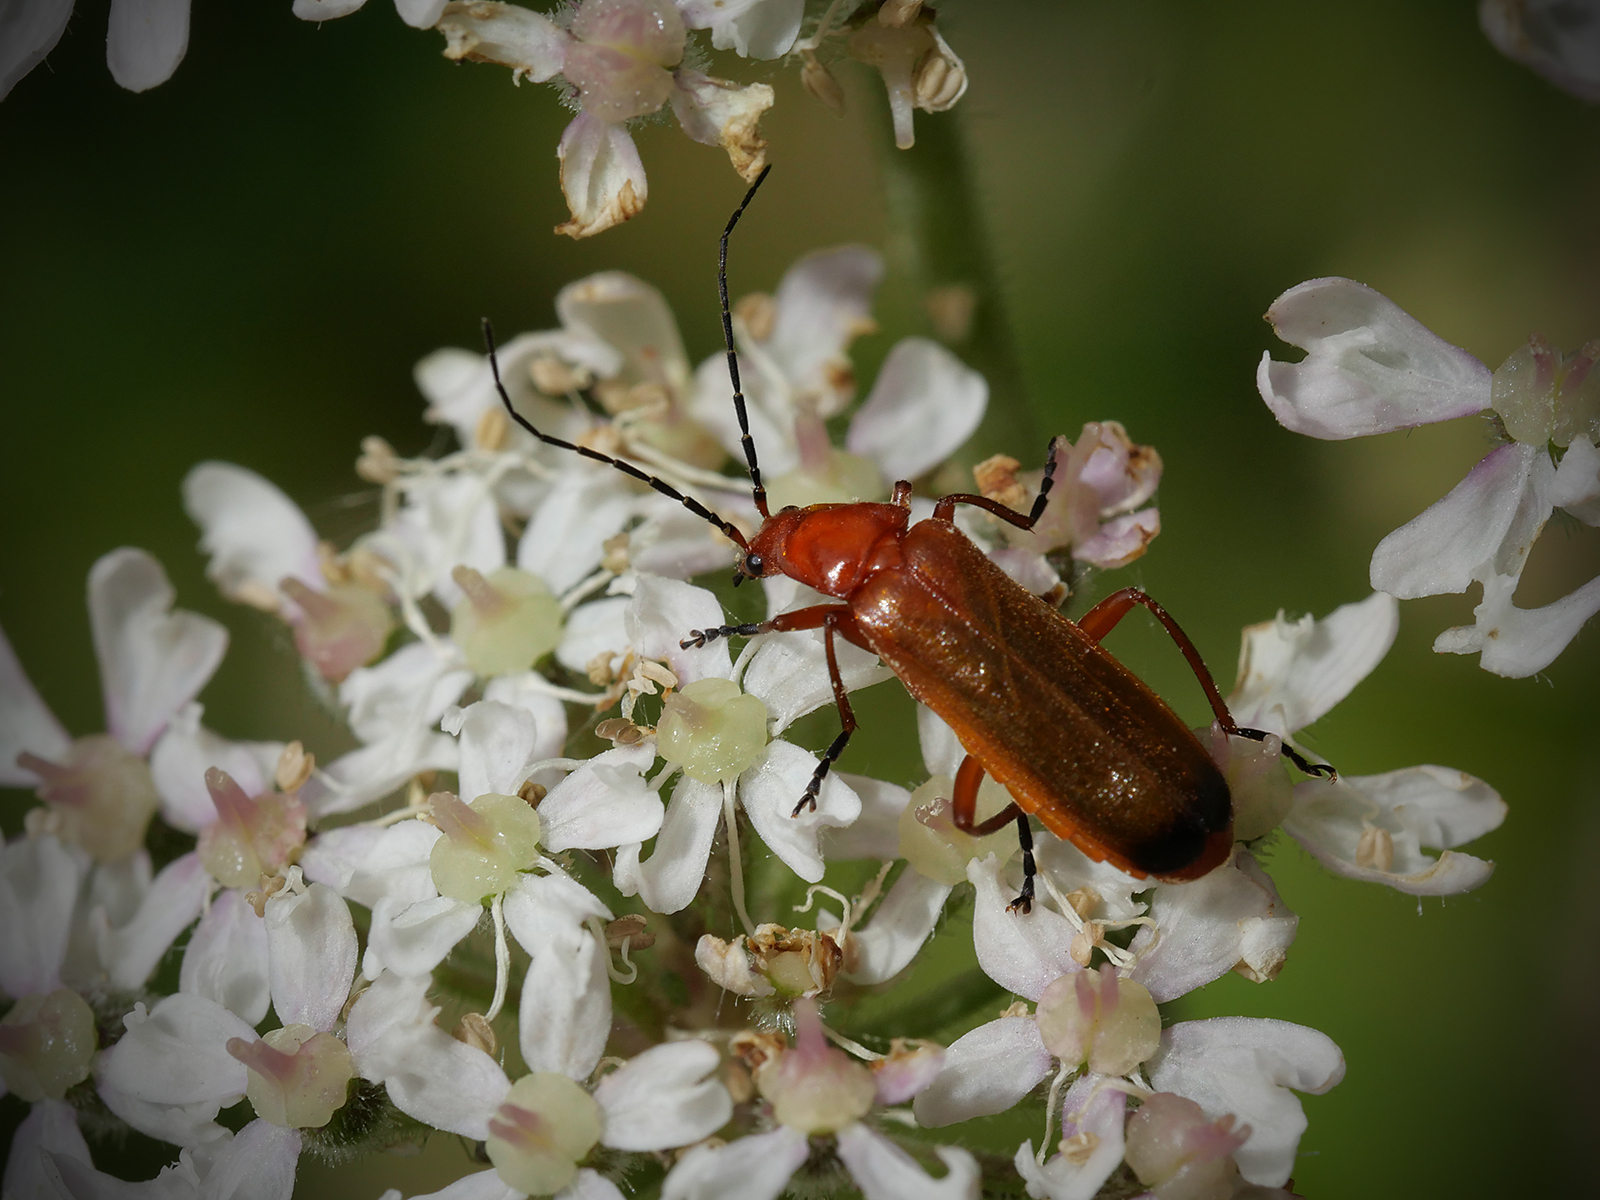 Red soldier beetle on cow parsley